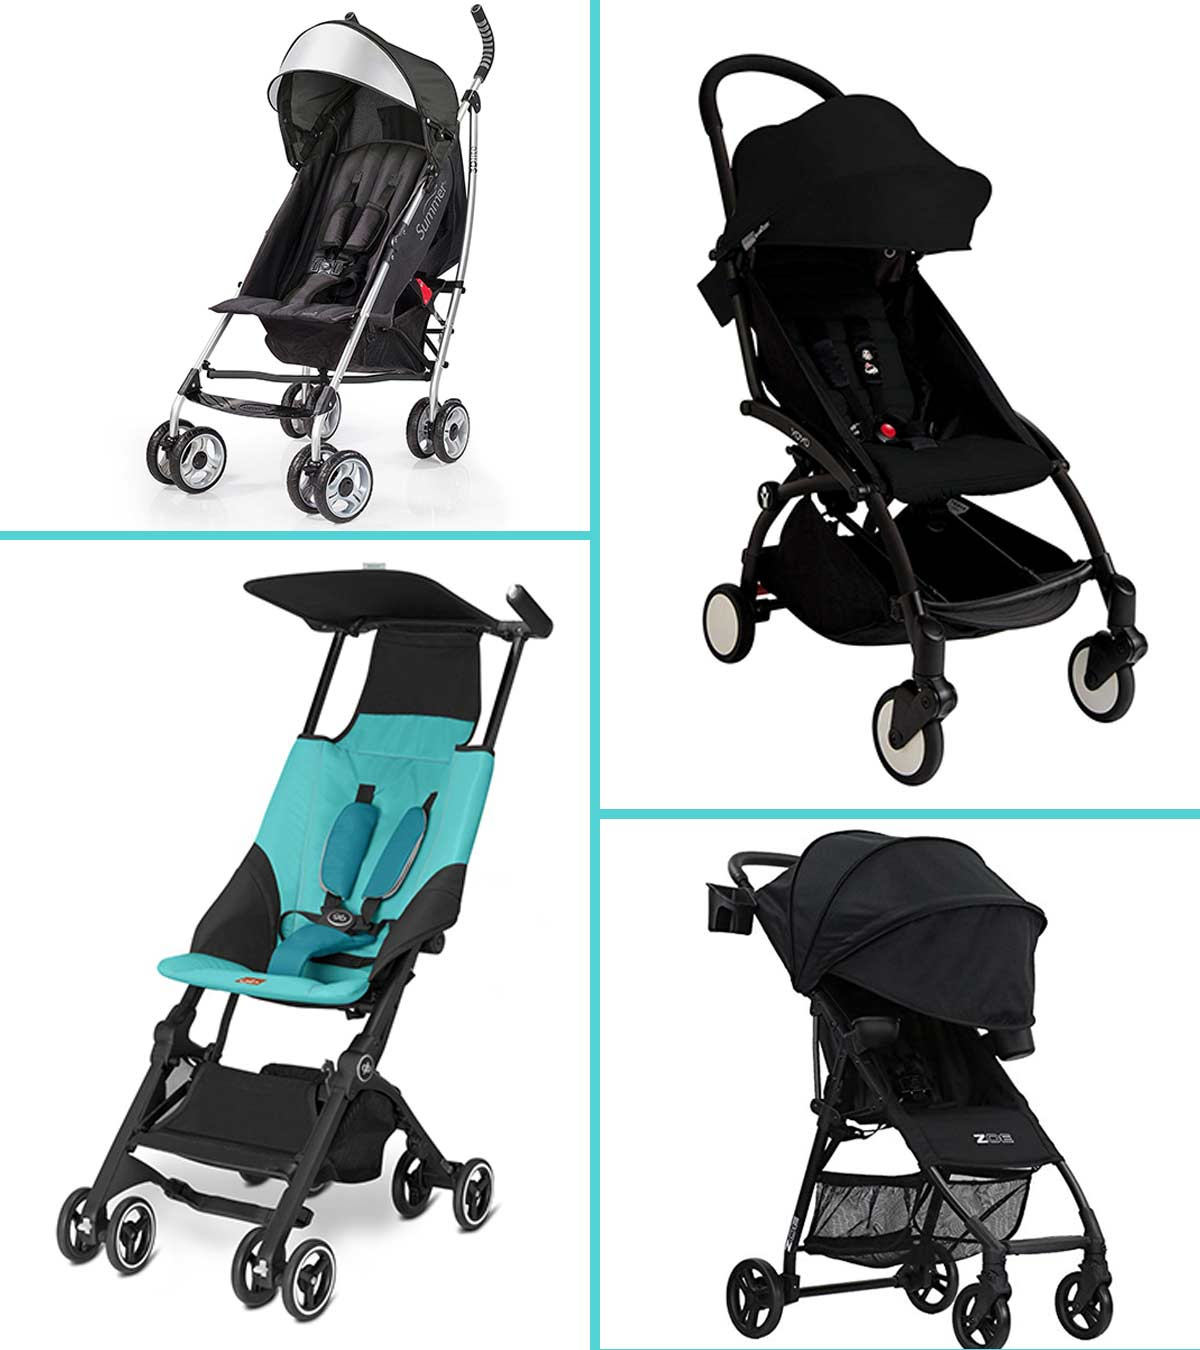 Newborn Umbrella Stroller 11 Best Umbrella Strollers In 2019